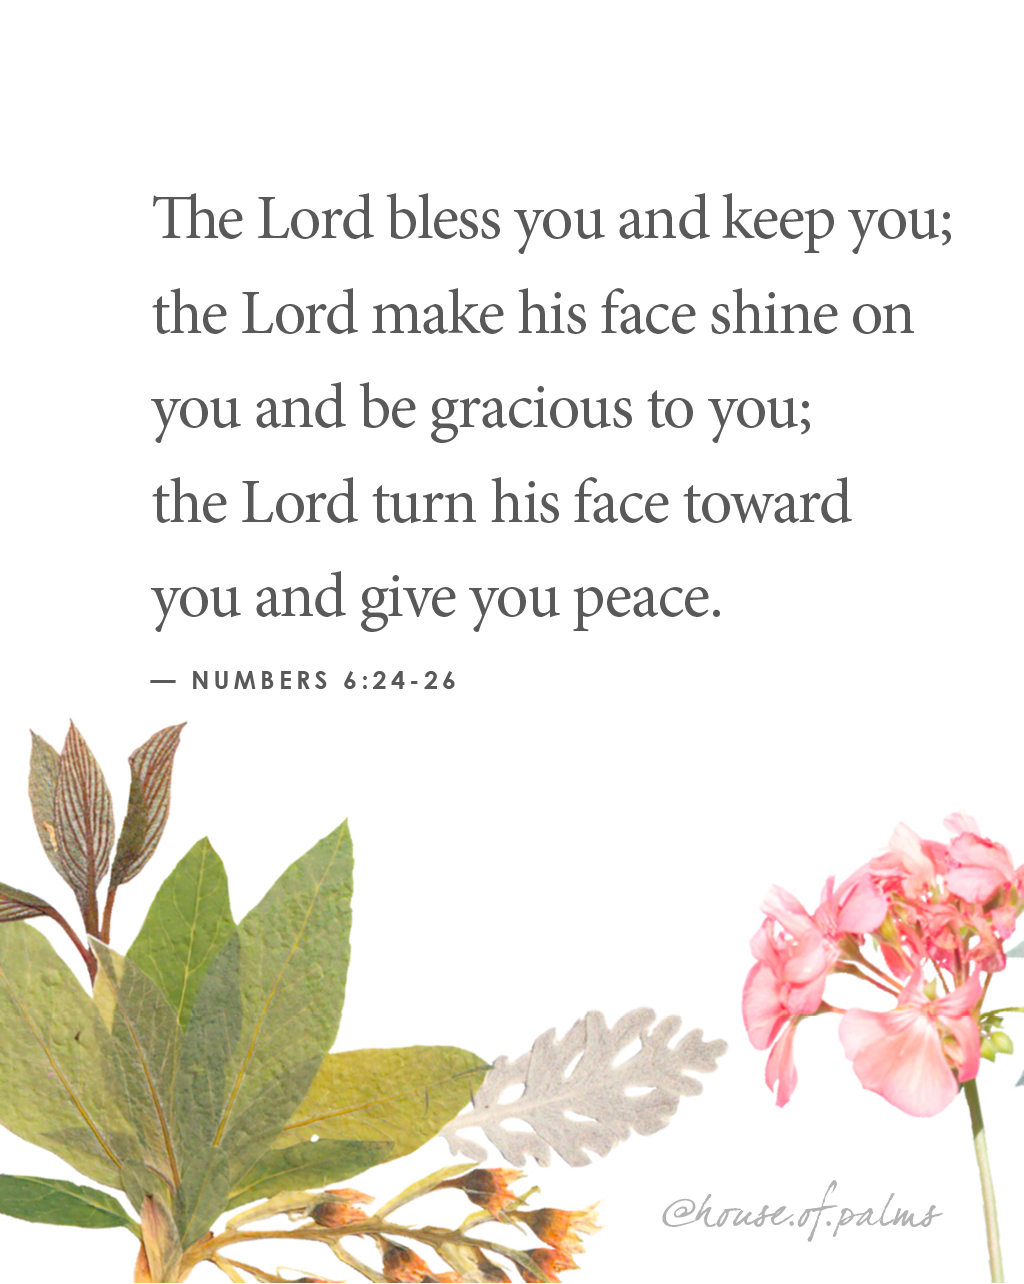 may the lord bless and keep you - benediction